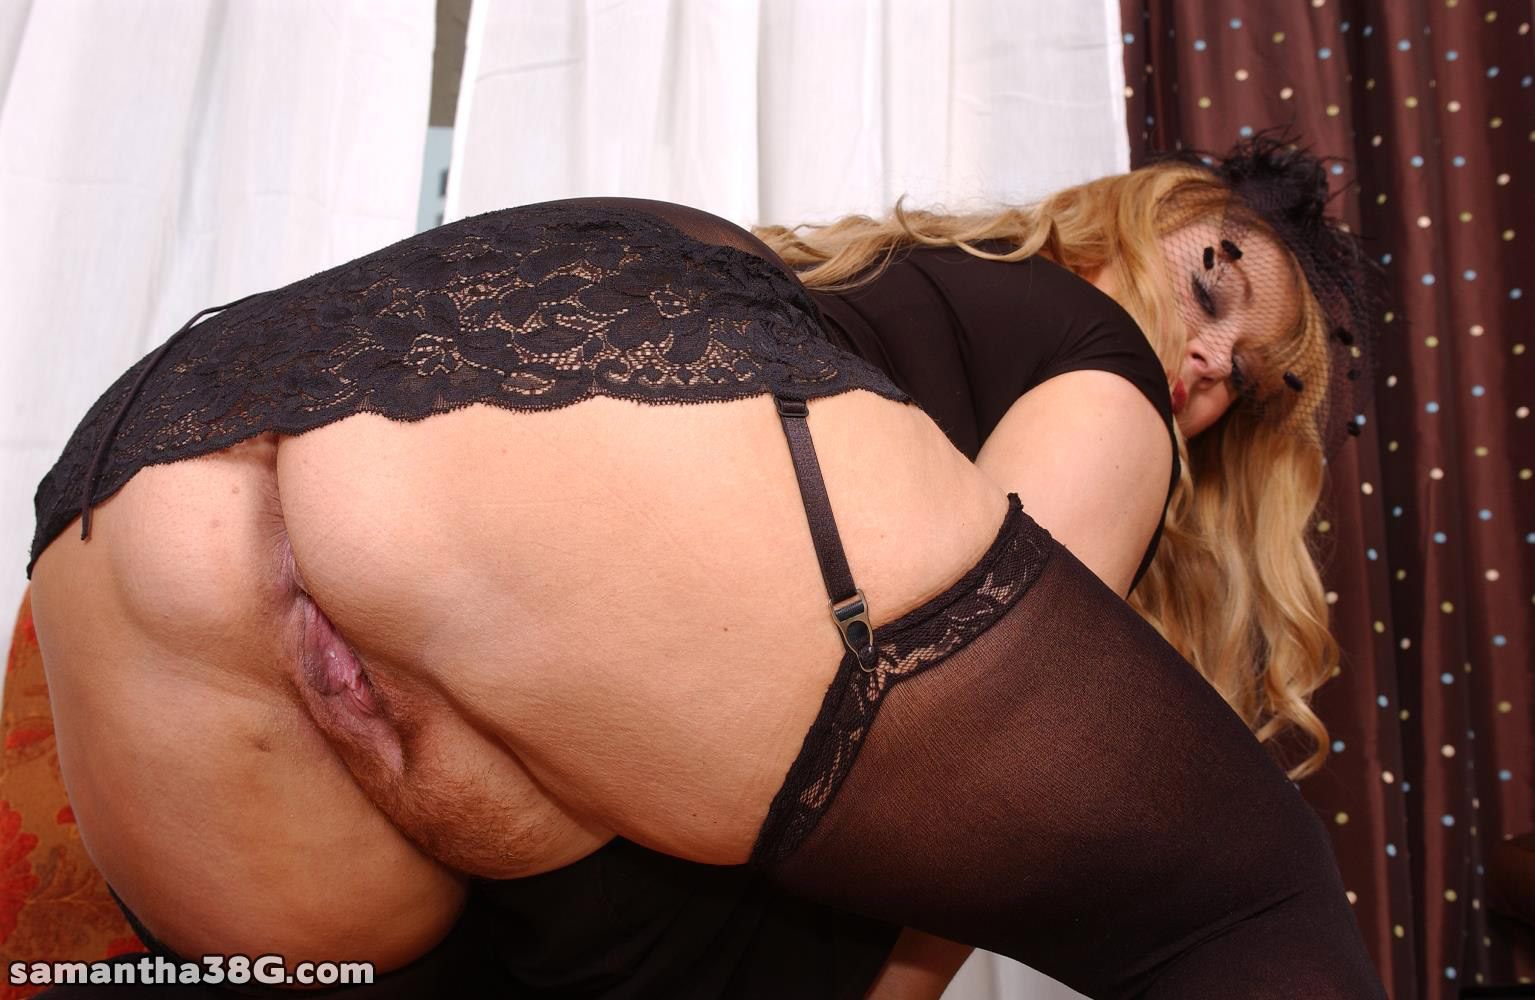 Big ass mature stockings and high heels